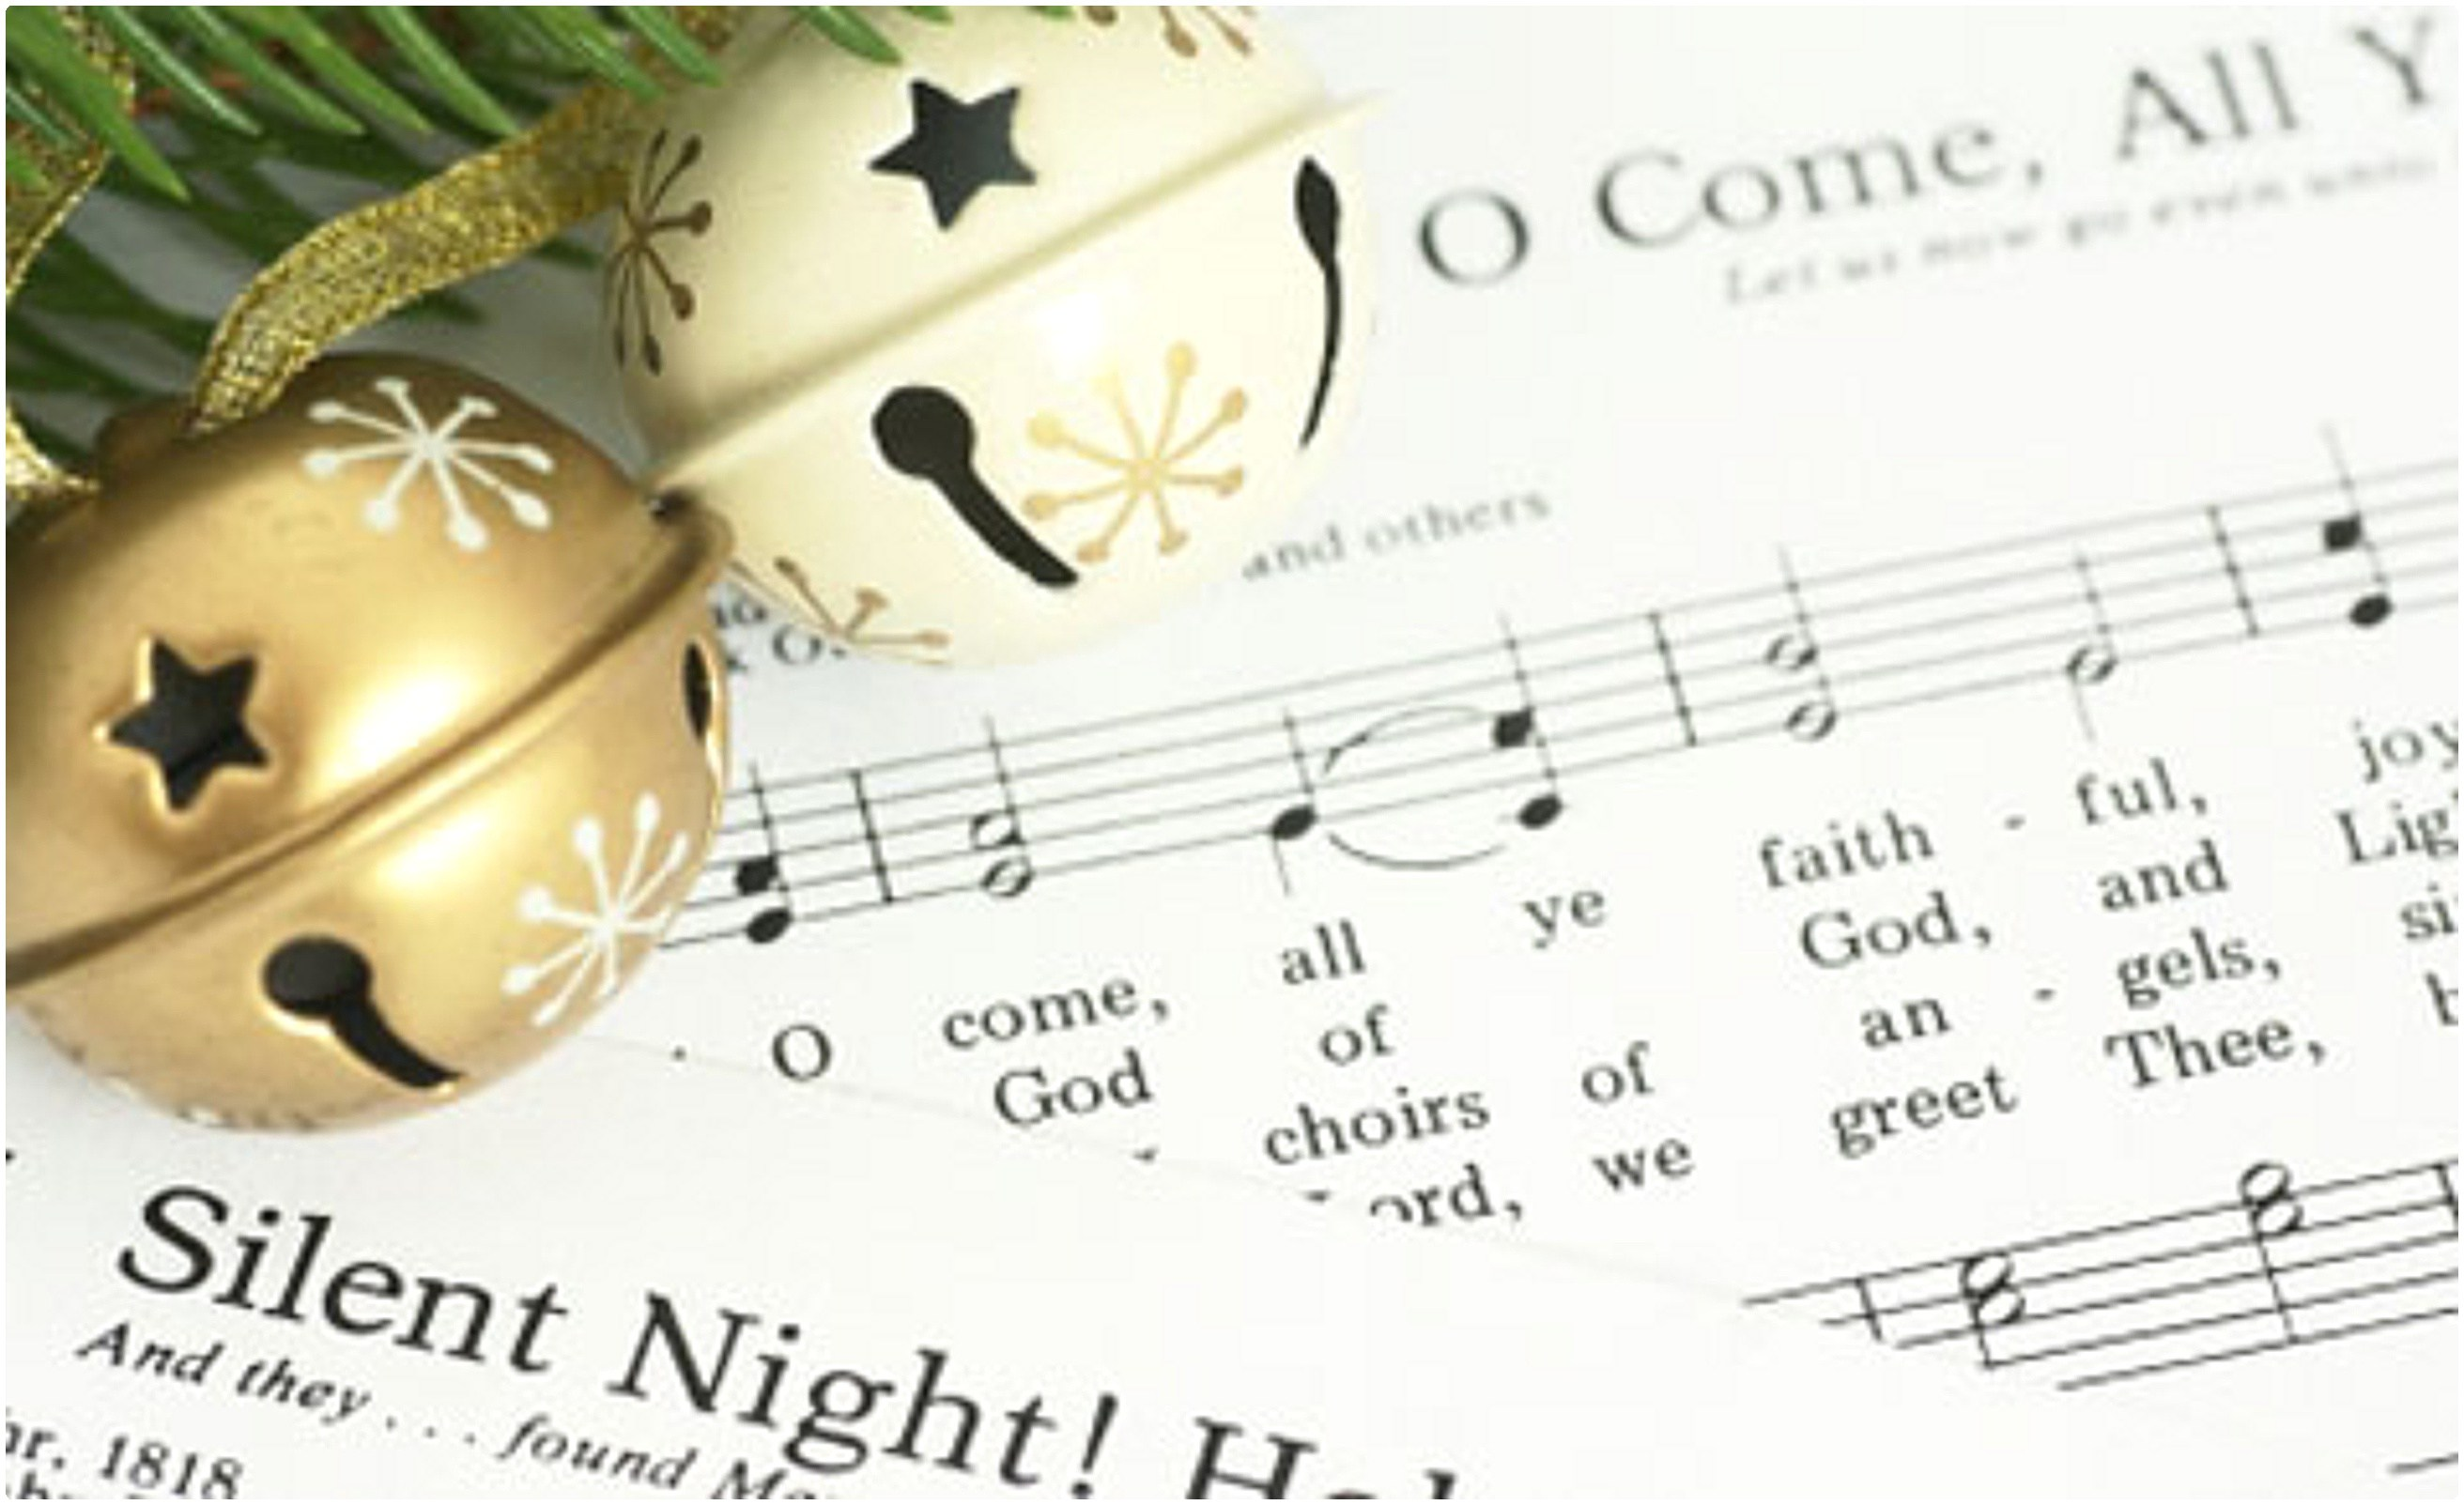 Heights & Lights Carol Sing @ First Congregational Church